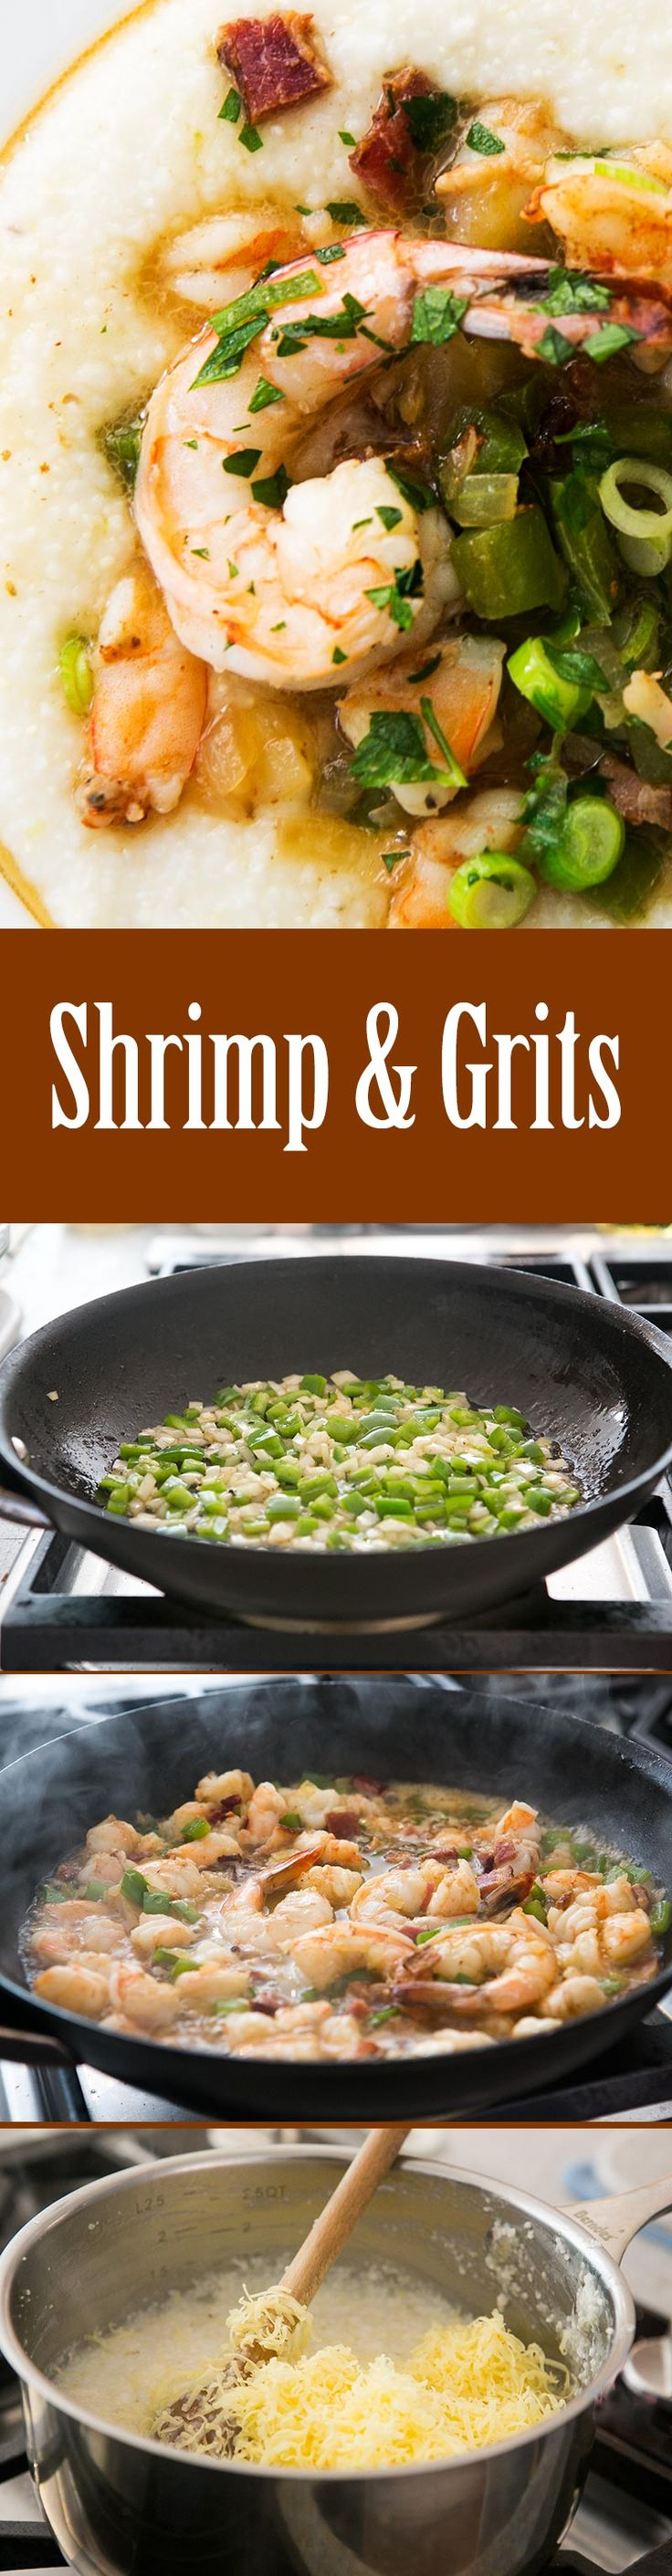 Southern style shrimp and grits! EASY to make at home, grits topped with shrimp, onions, peppers and bacon. The Ultimate Southern breakfast. On SimplyRecipes.com